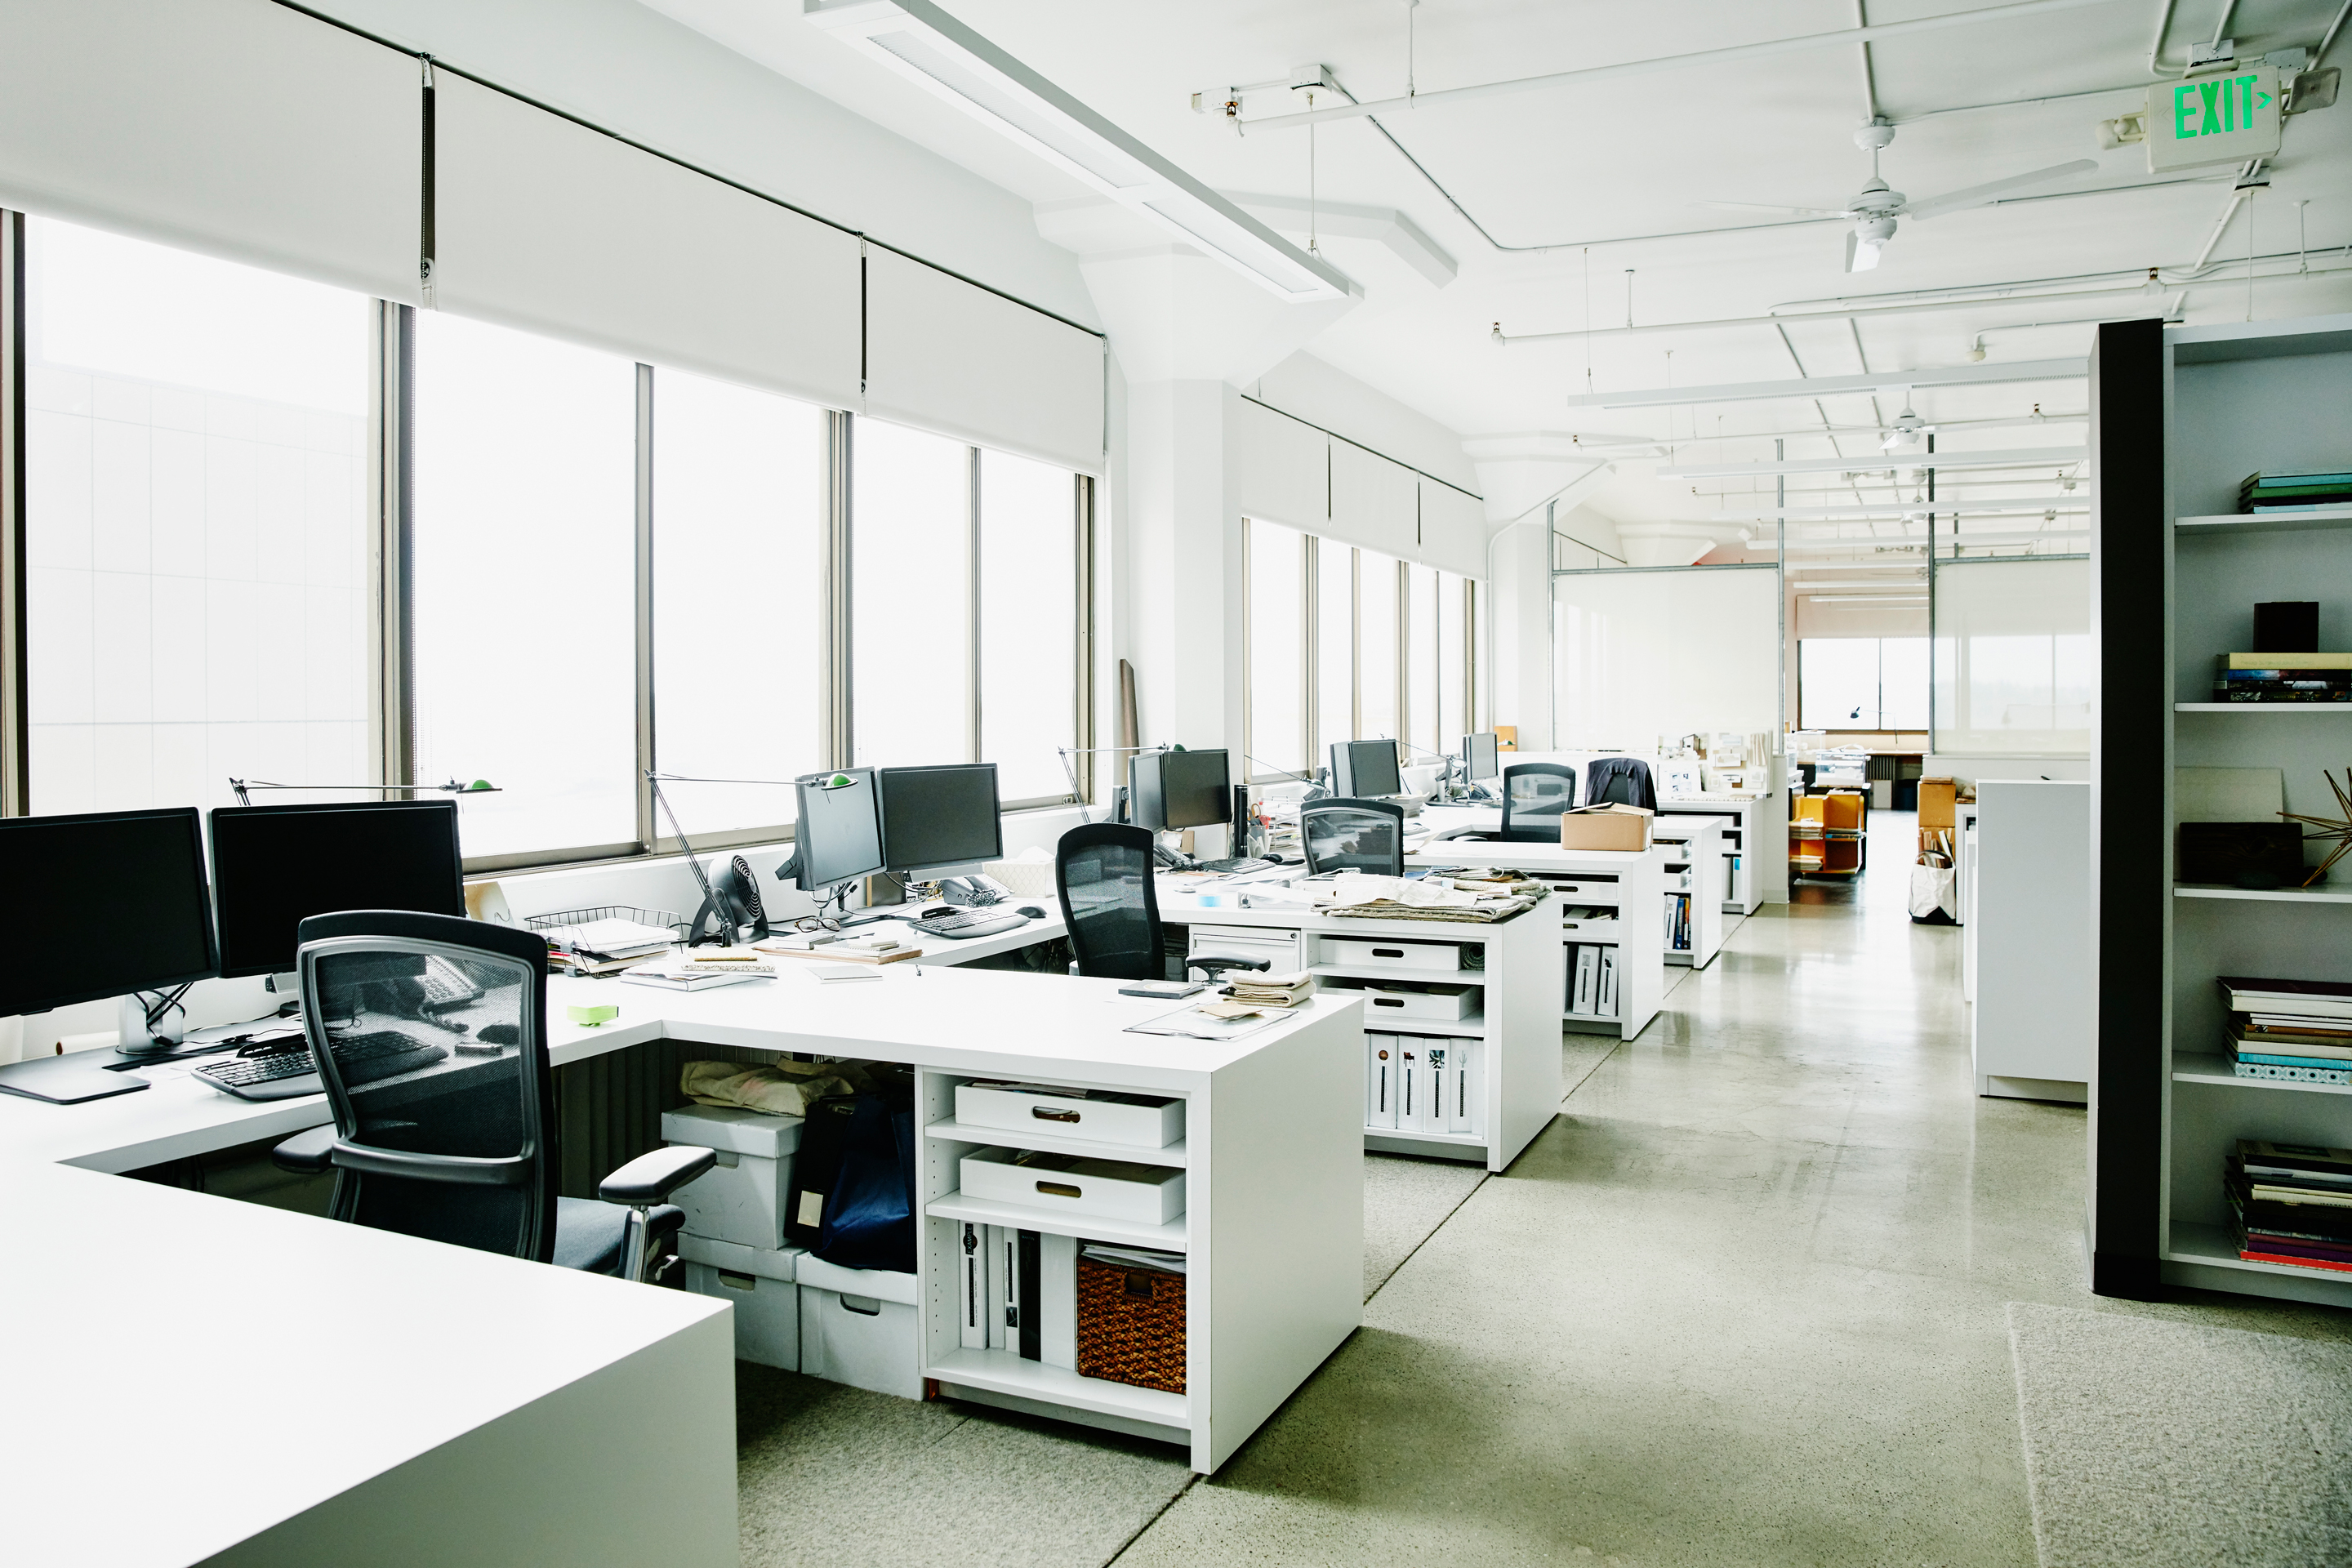 Coronavirus Work Covid 19 Could Change The Entire Notion Of Offices As Companies Eye Office Rental Savings Fortune